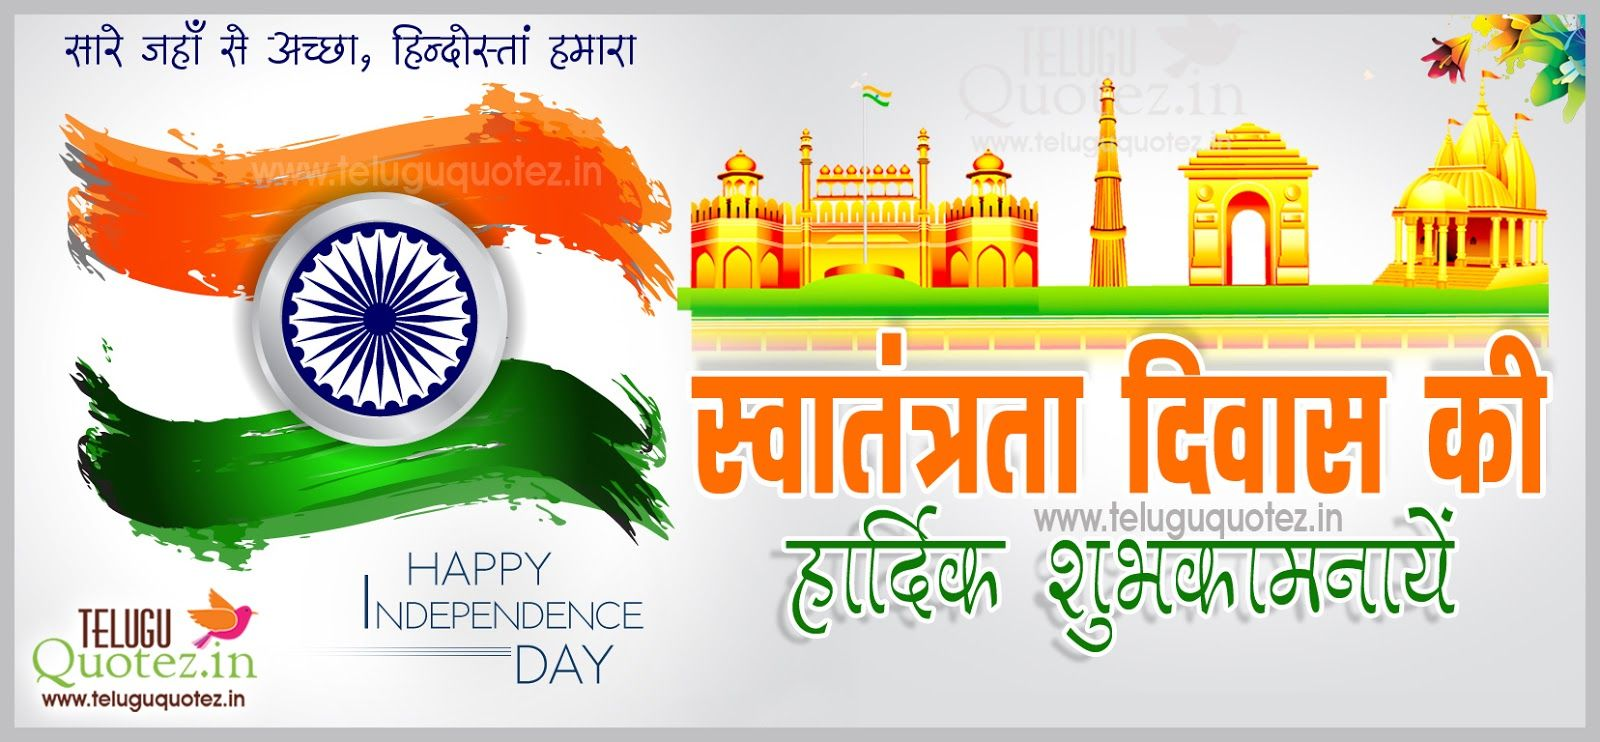 Teluguquotez In Happy Independence Day Hindi Message Quotes Independence Day Quotes Happy Independence Day Message Quotes